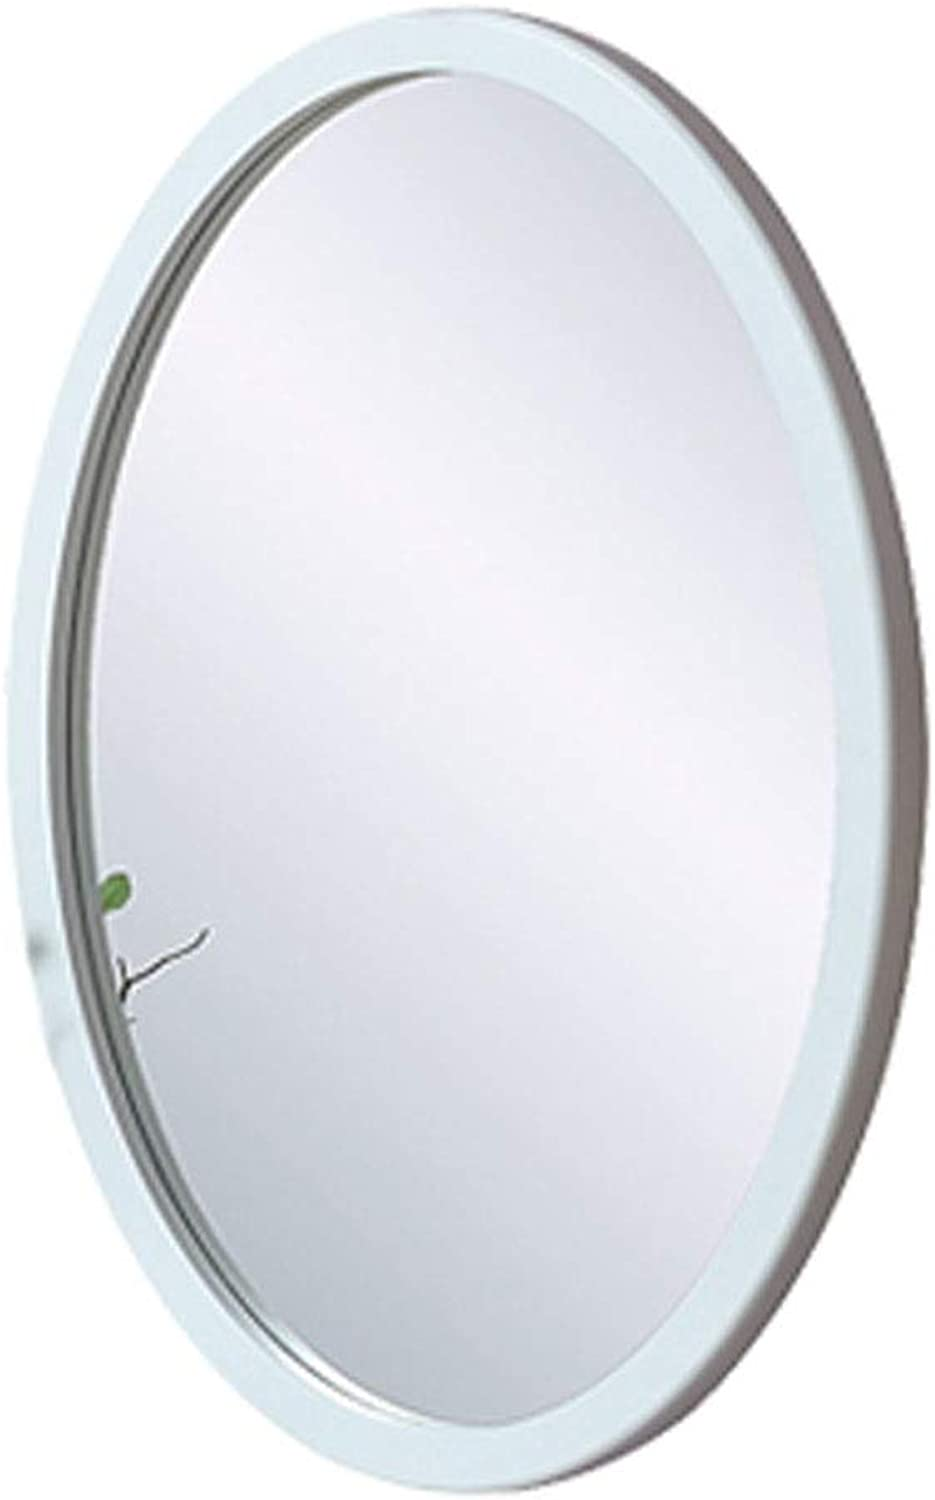 Nordic Elliptical Mirror Wall Decoration Vanity Mirror Hanging Makeup Mirror Simple Creative Wall Mirror Home Best Gift (color   White, Size   58X43CM)